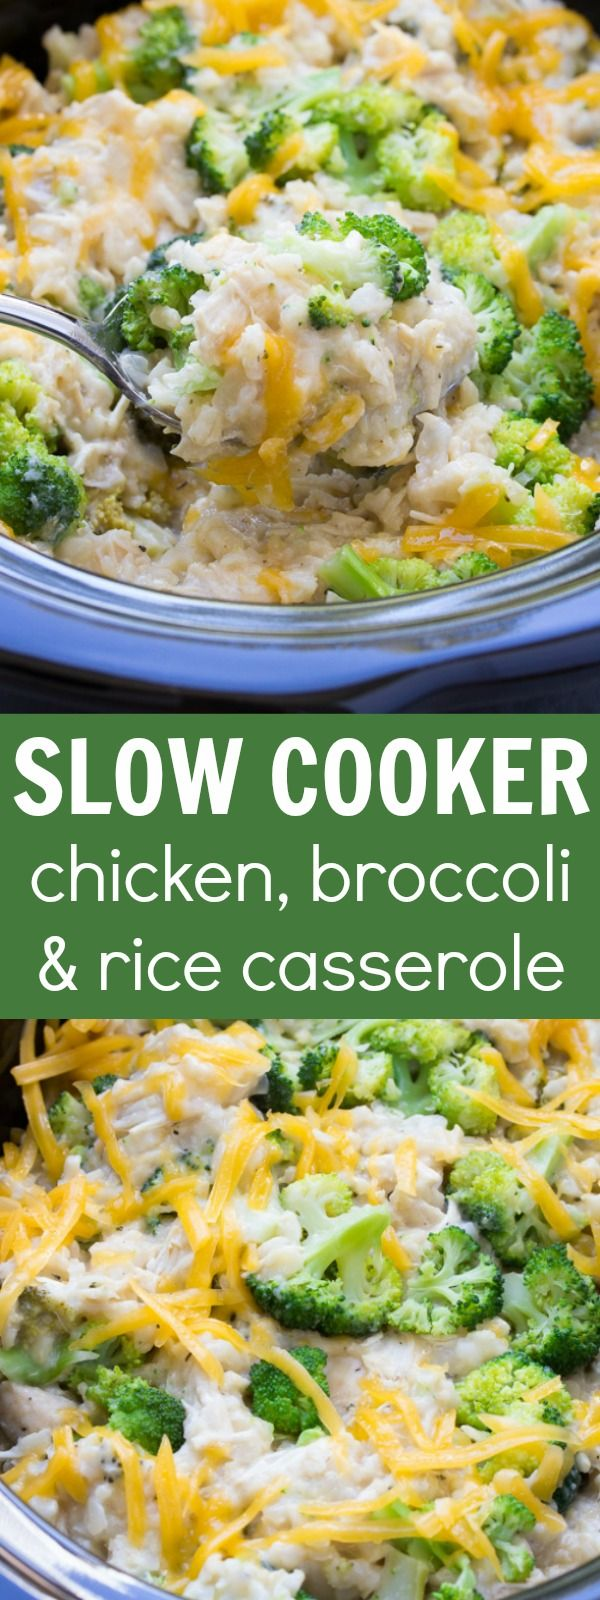 Best Ever Cheesy Slow Cooker Chicken Broccoli and Rice Casserole! Only 10 minutes prep time! (And it's healthy!) | www.kristineskitchenblog.com